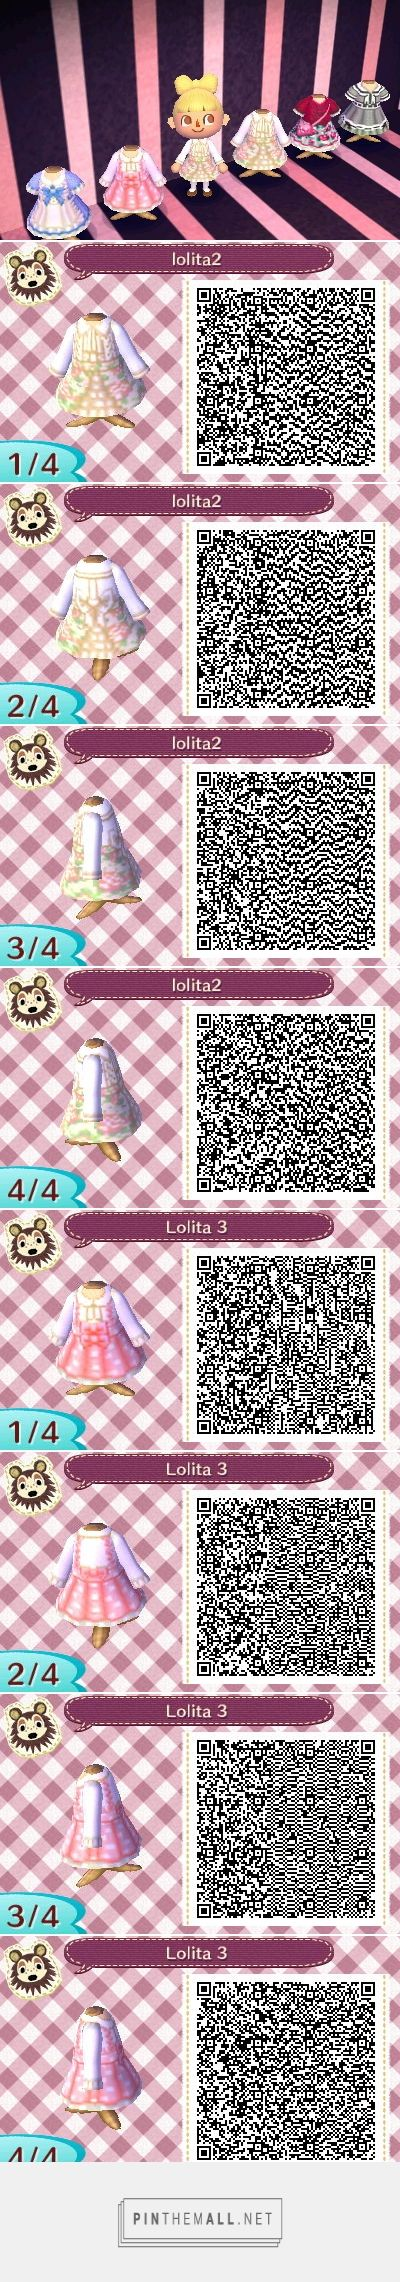 Black dress qr code - Find This Pin And More On Animal Crossing Qr Clothes